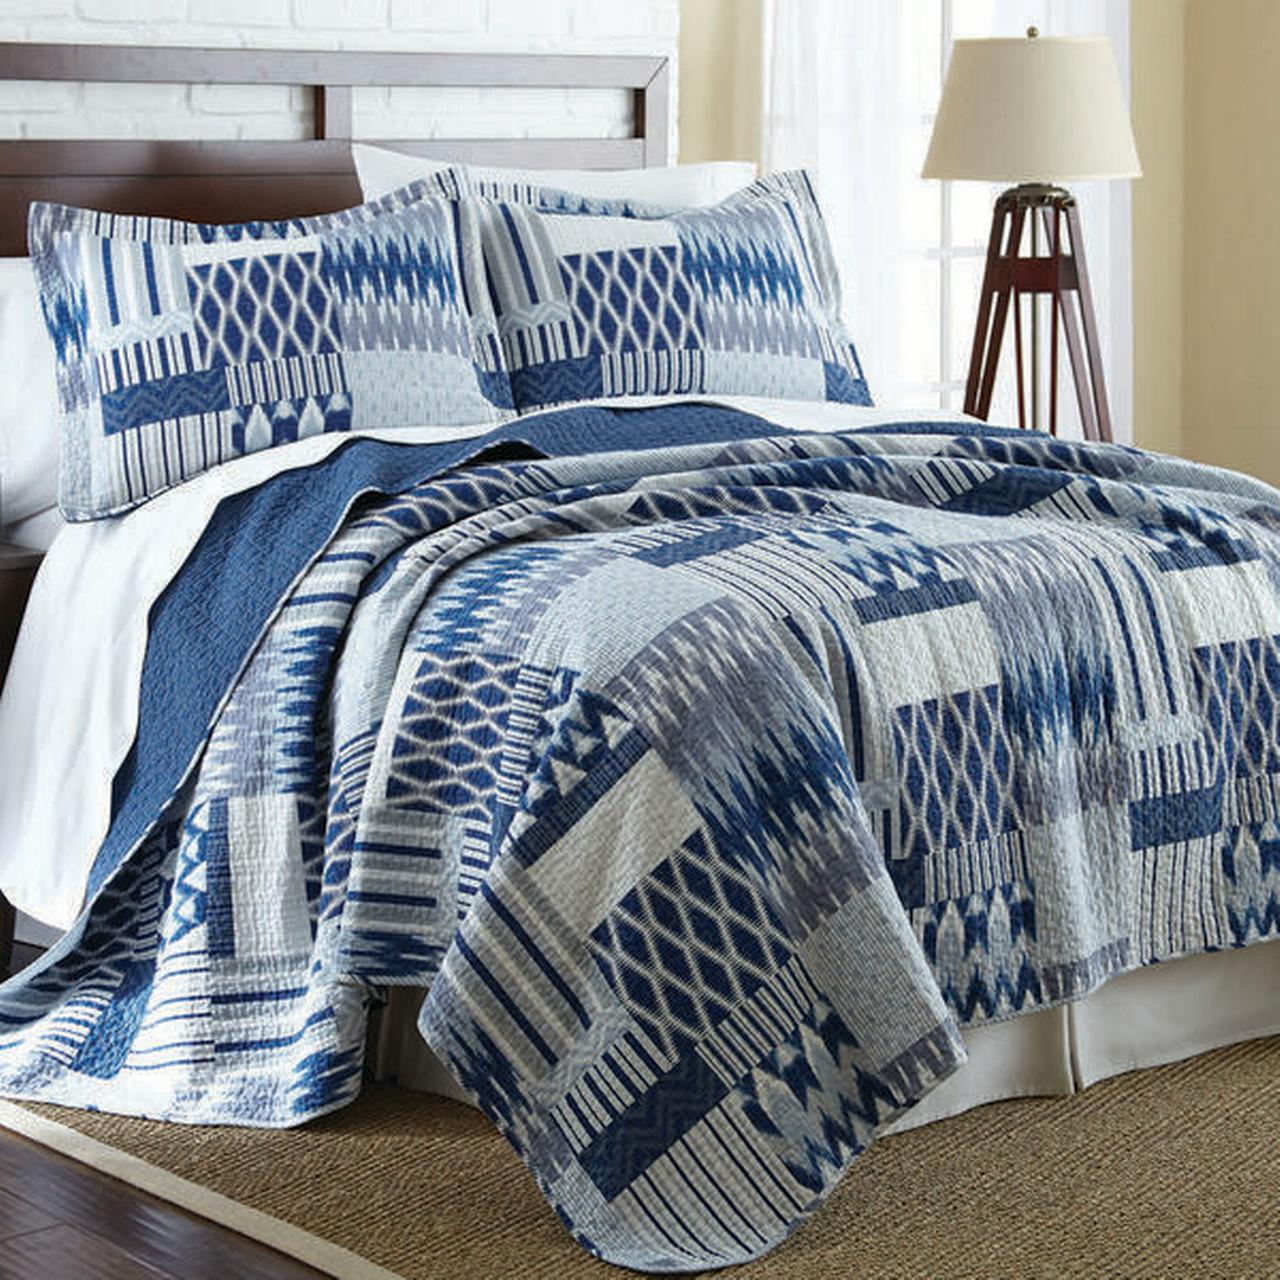 Click here to buy 100% Cotton 3 Piece Printed Reversible Quilt Set Aubrey Full Queen by Amrapur Overseas, Inc..